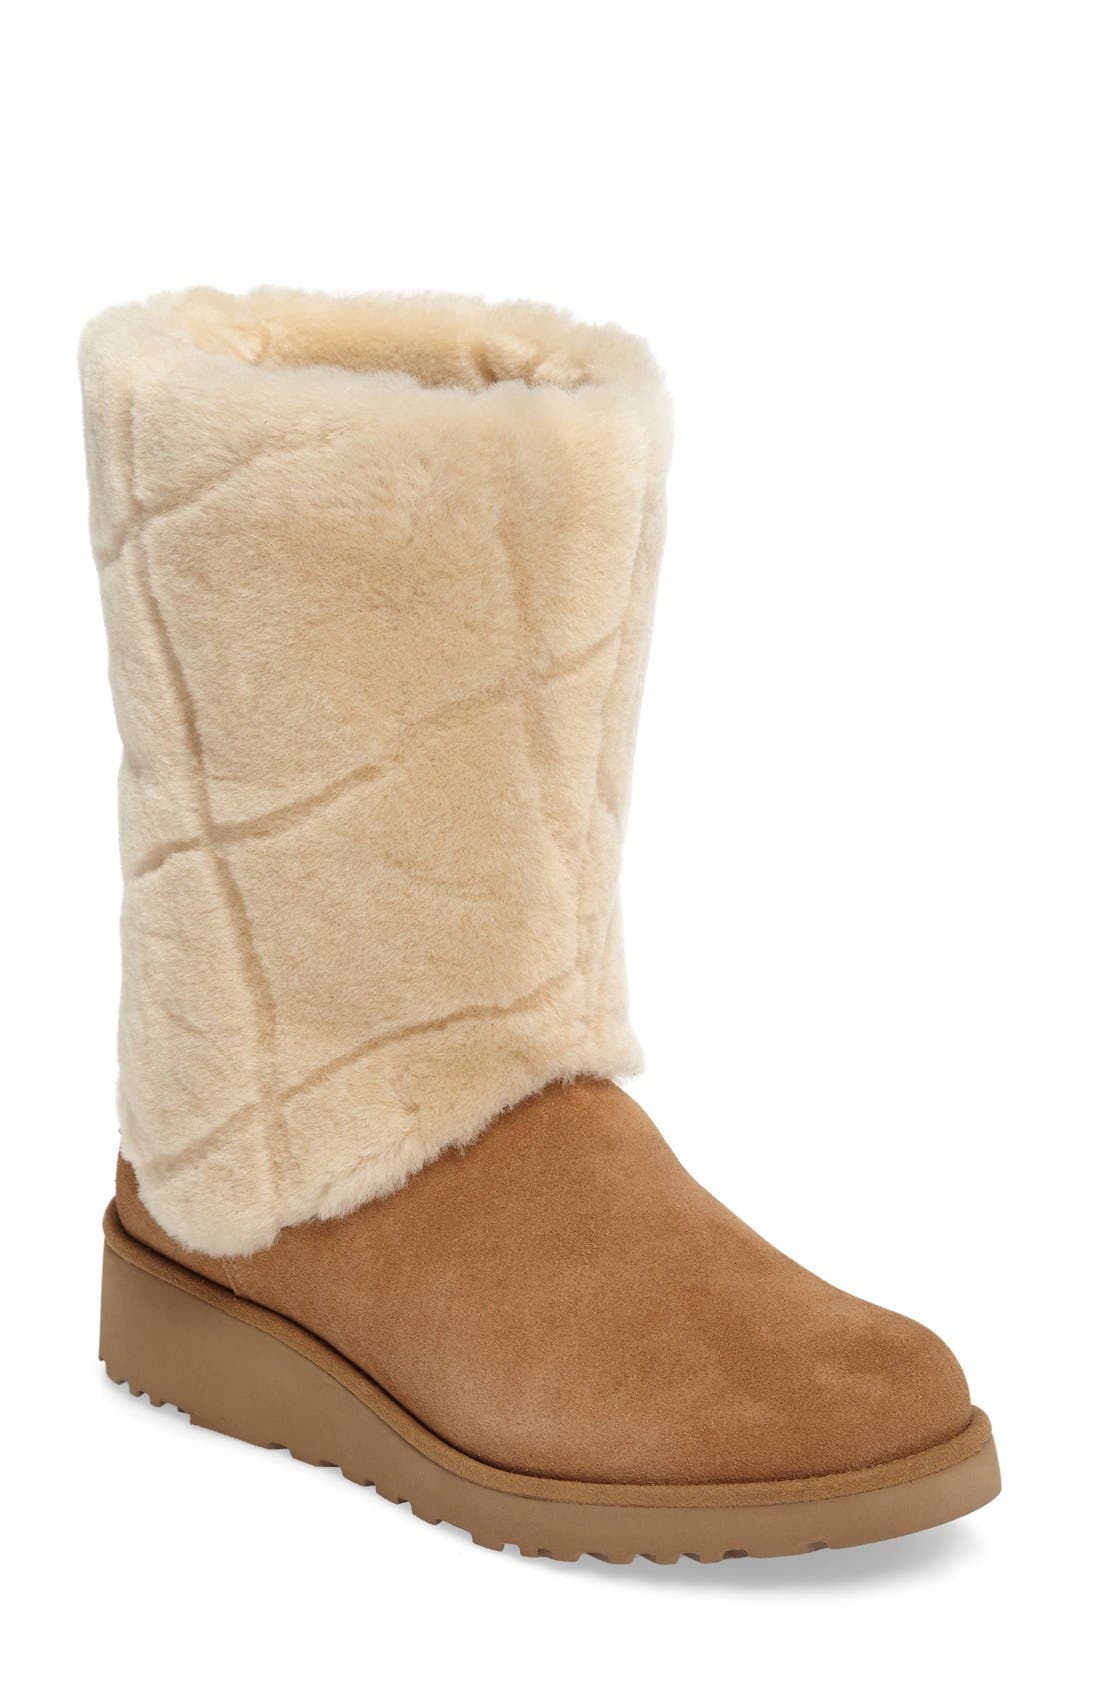 Alternate Image 1 Selected - UGG® Ariella Luxe Diamond Genuine Shearling Boot (Women)